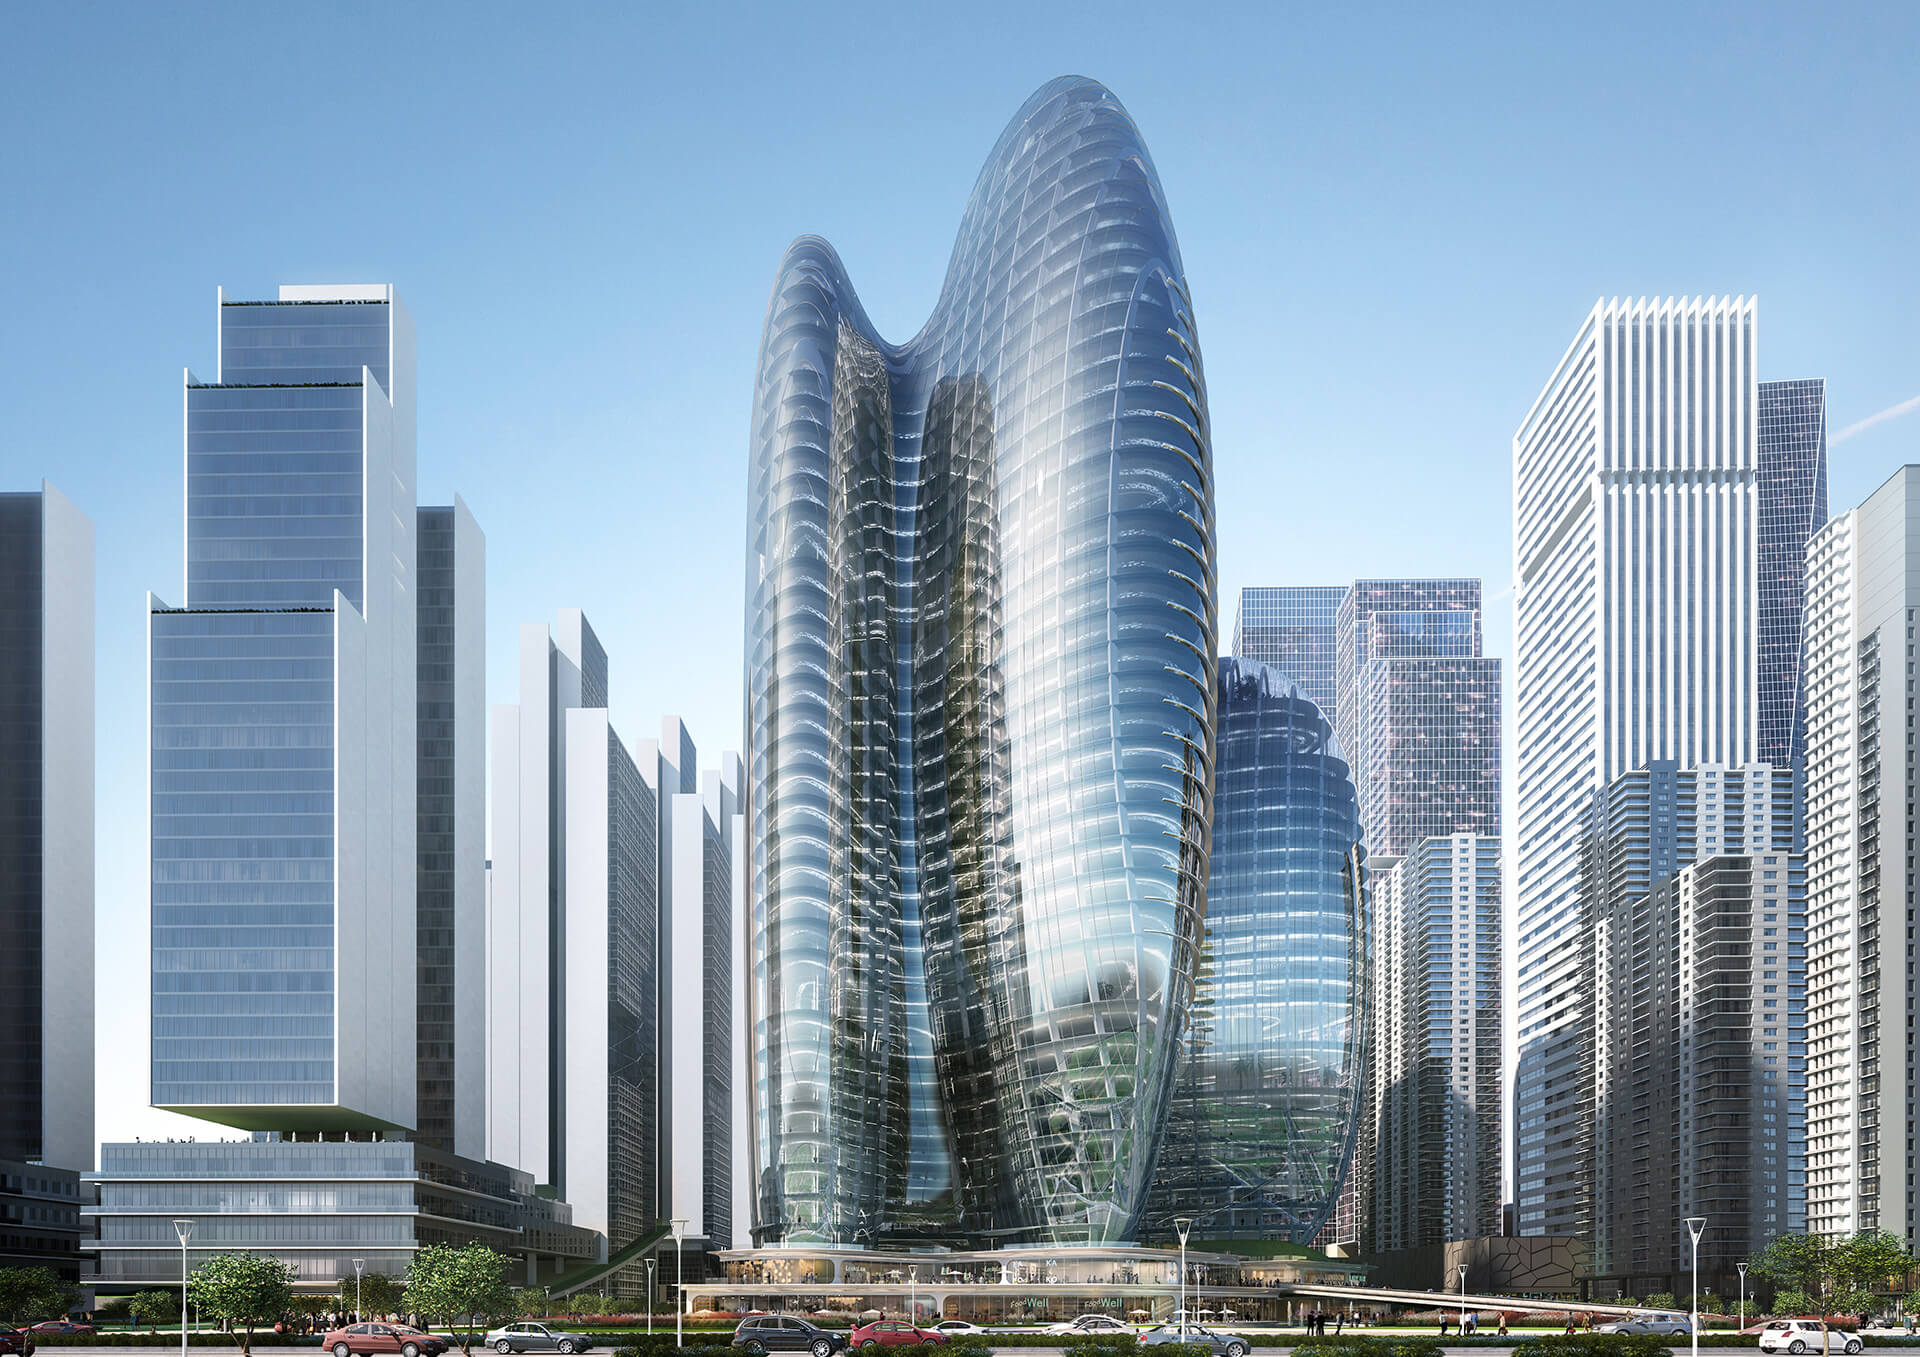 The winning design proposal imagines four interconnected towers, resembling fluid glass missiles| OPPO Headquarters | Zaha Hadid Architects | STIRworld